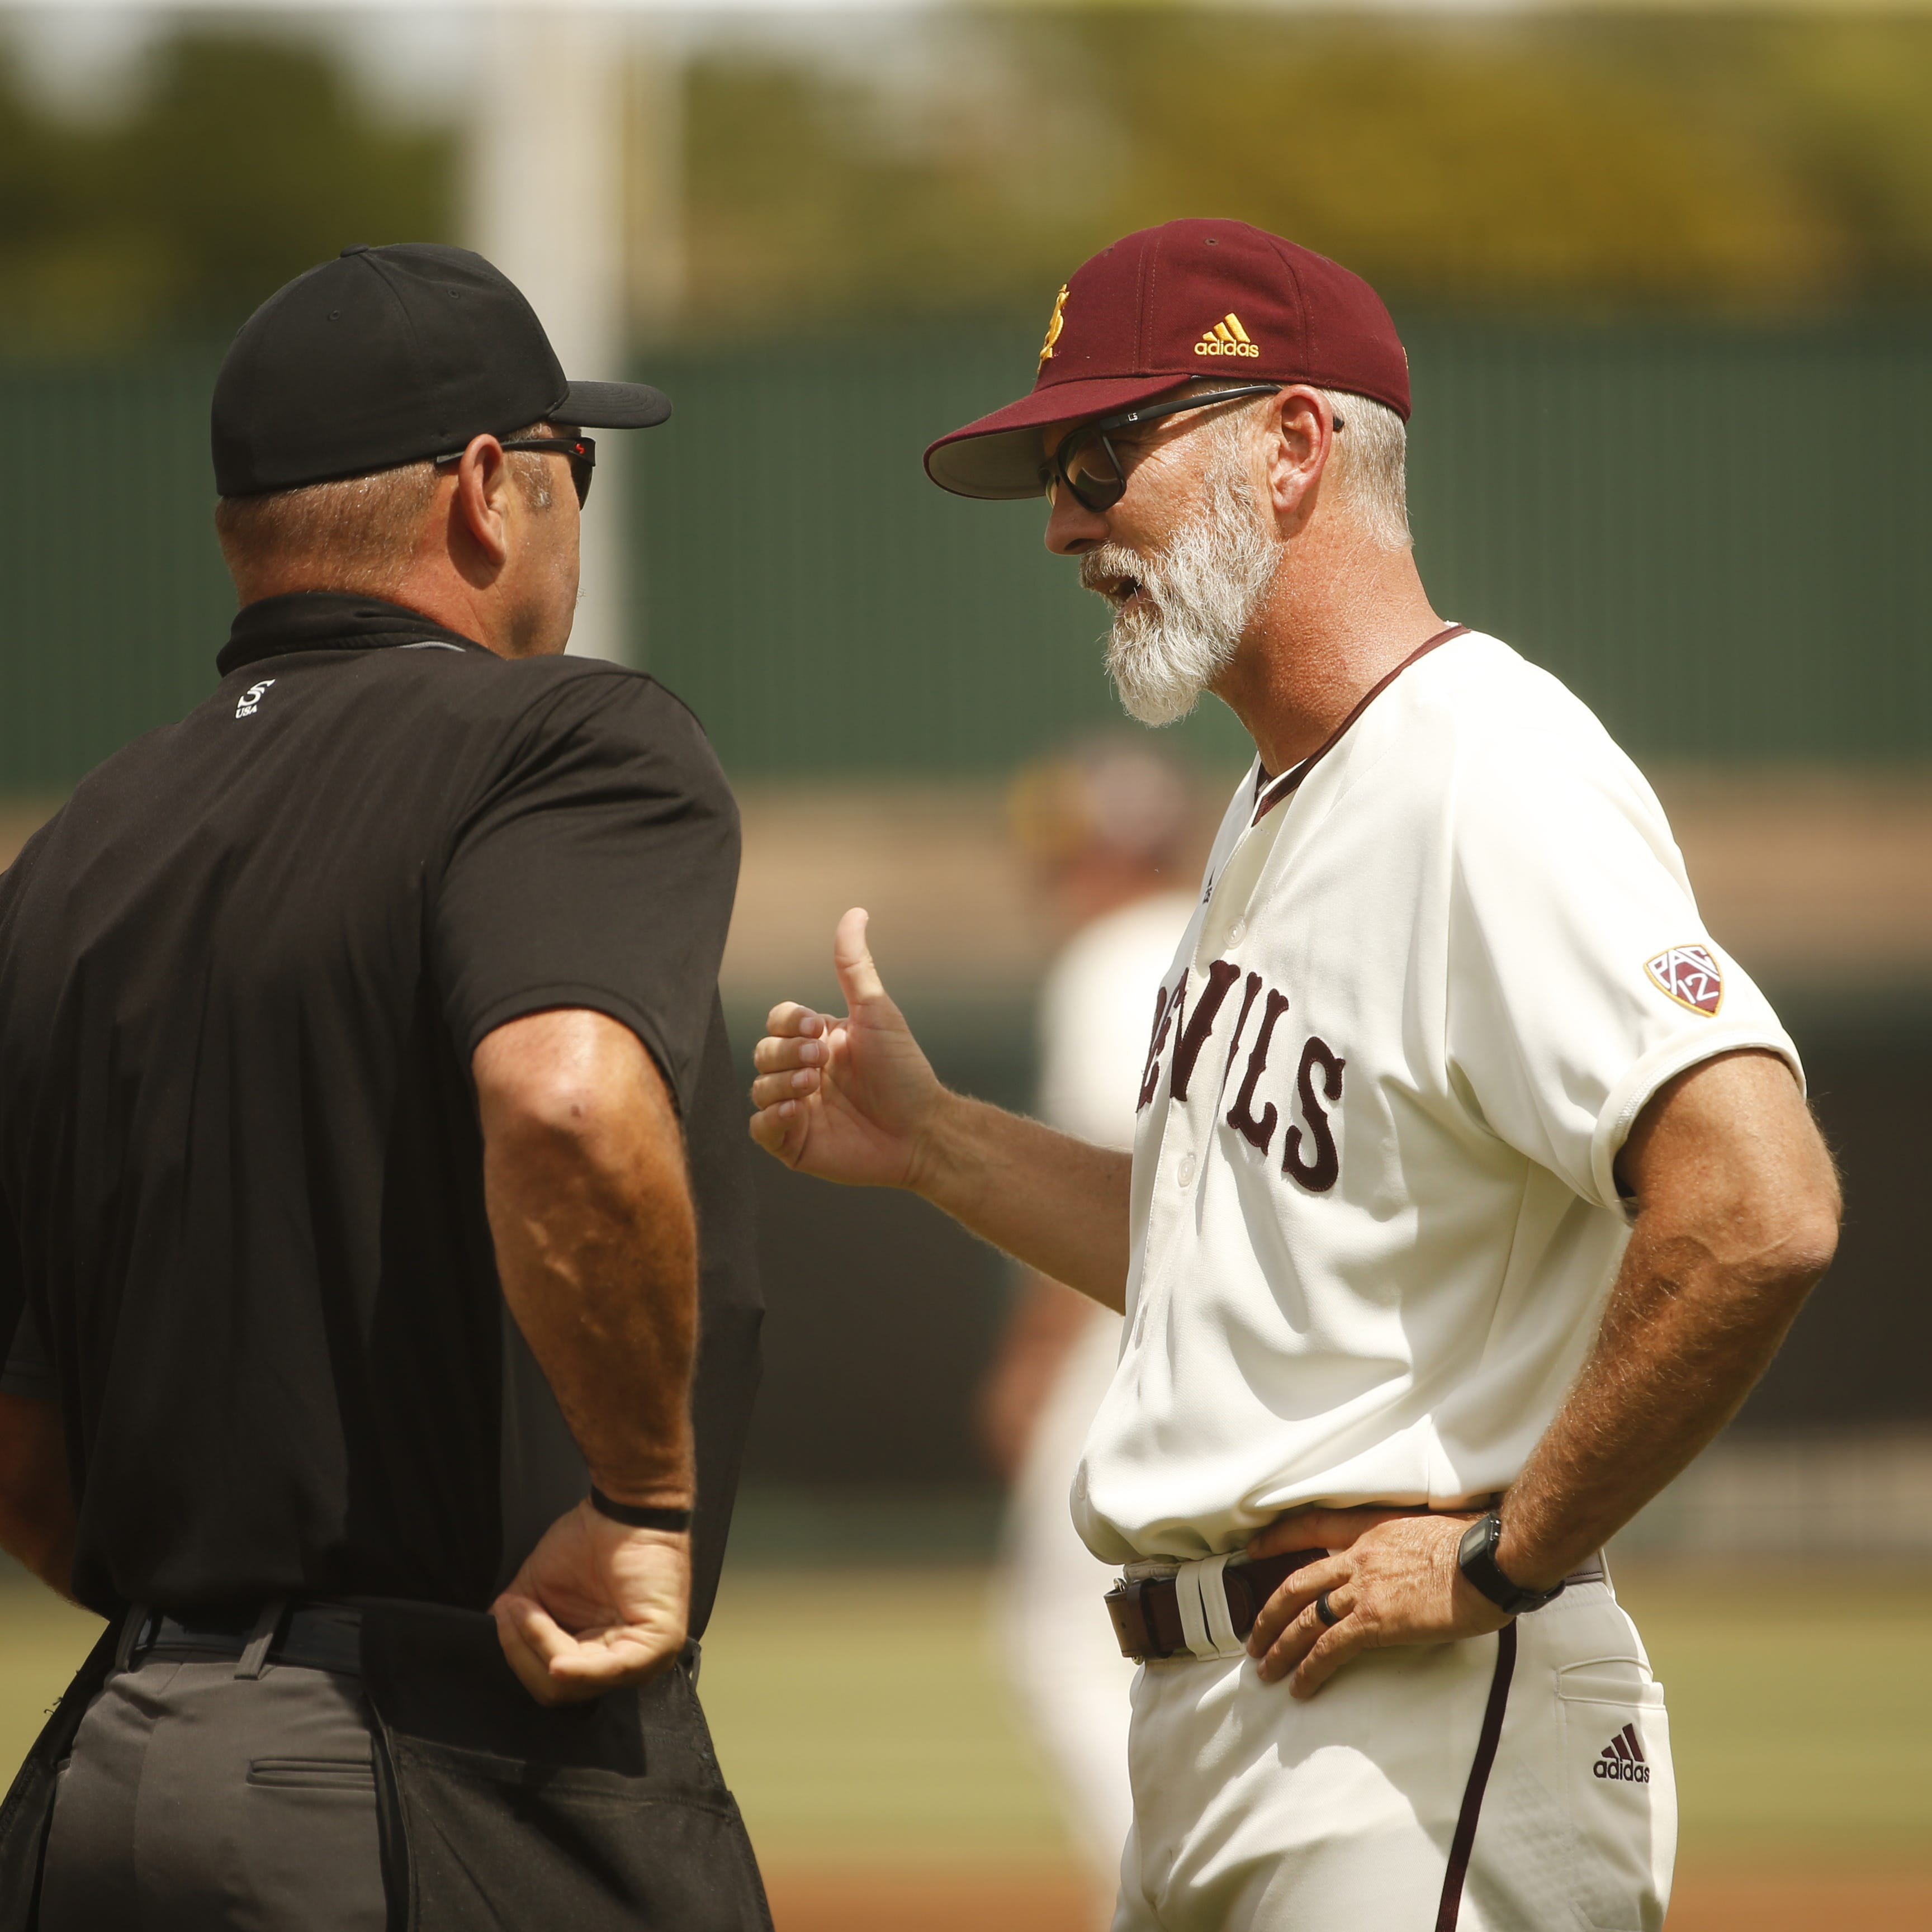 ASU baseball: 21 games over .500, but is that sufficient progress from 9 under?